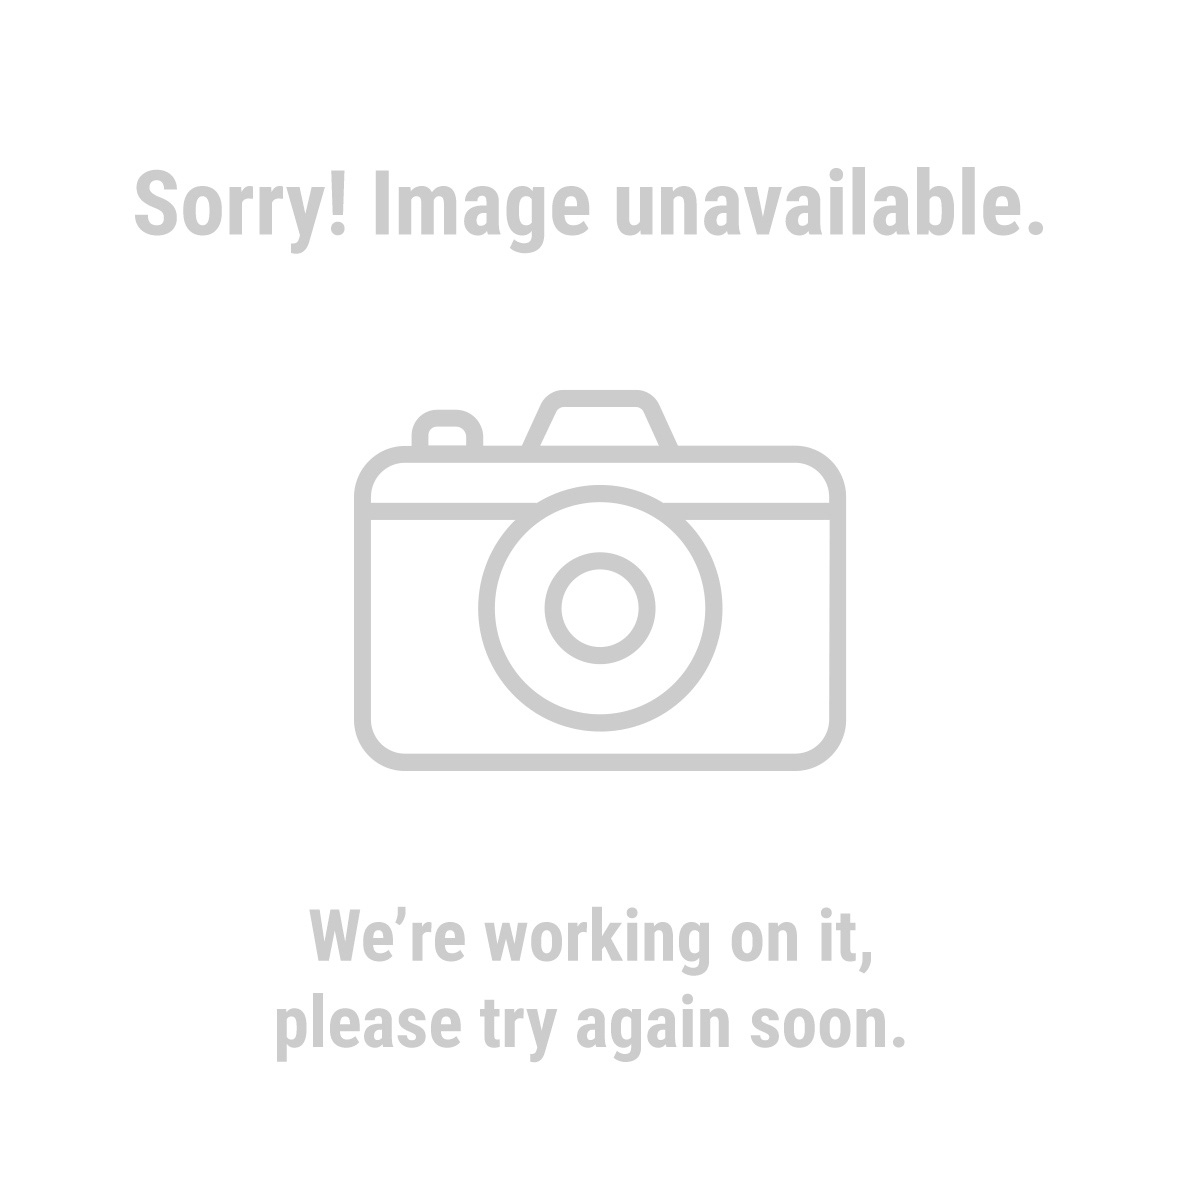 Opcom 47546 Weatherproof Security Camera with Night Vision